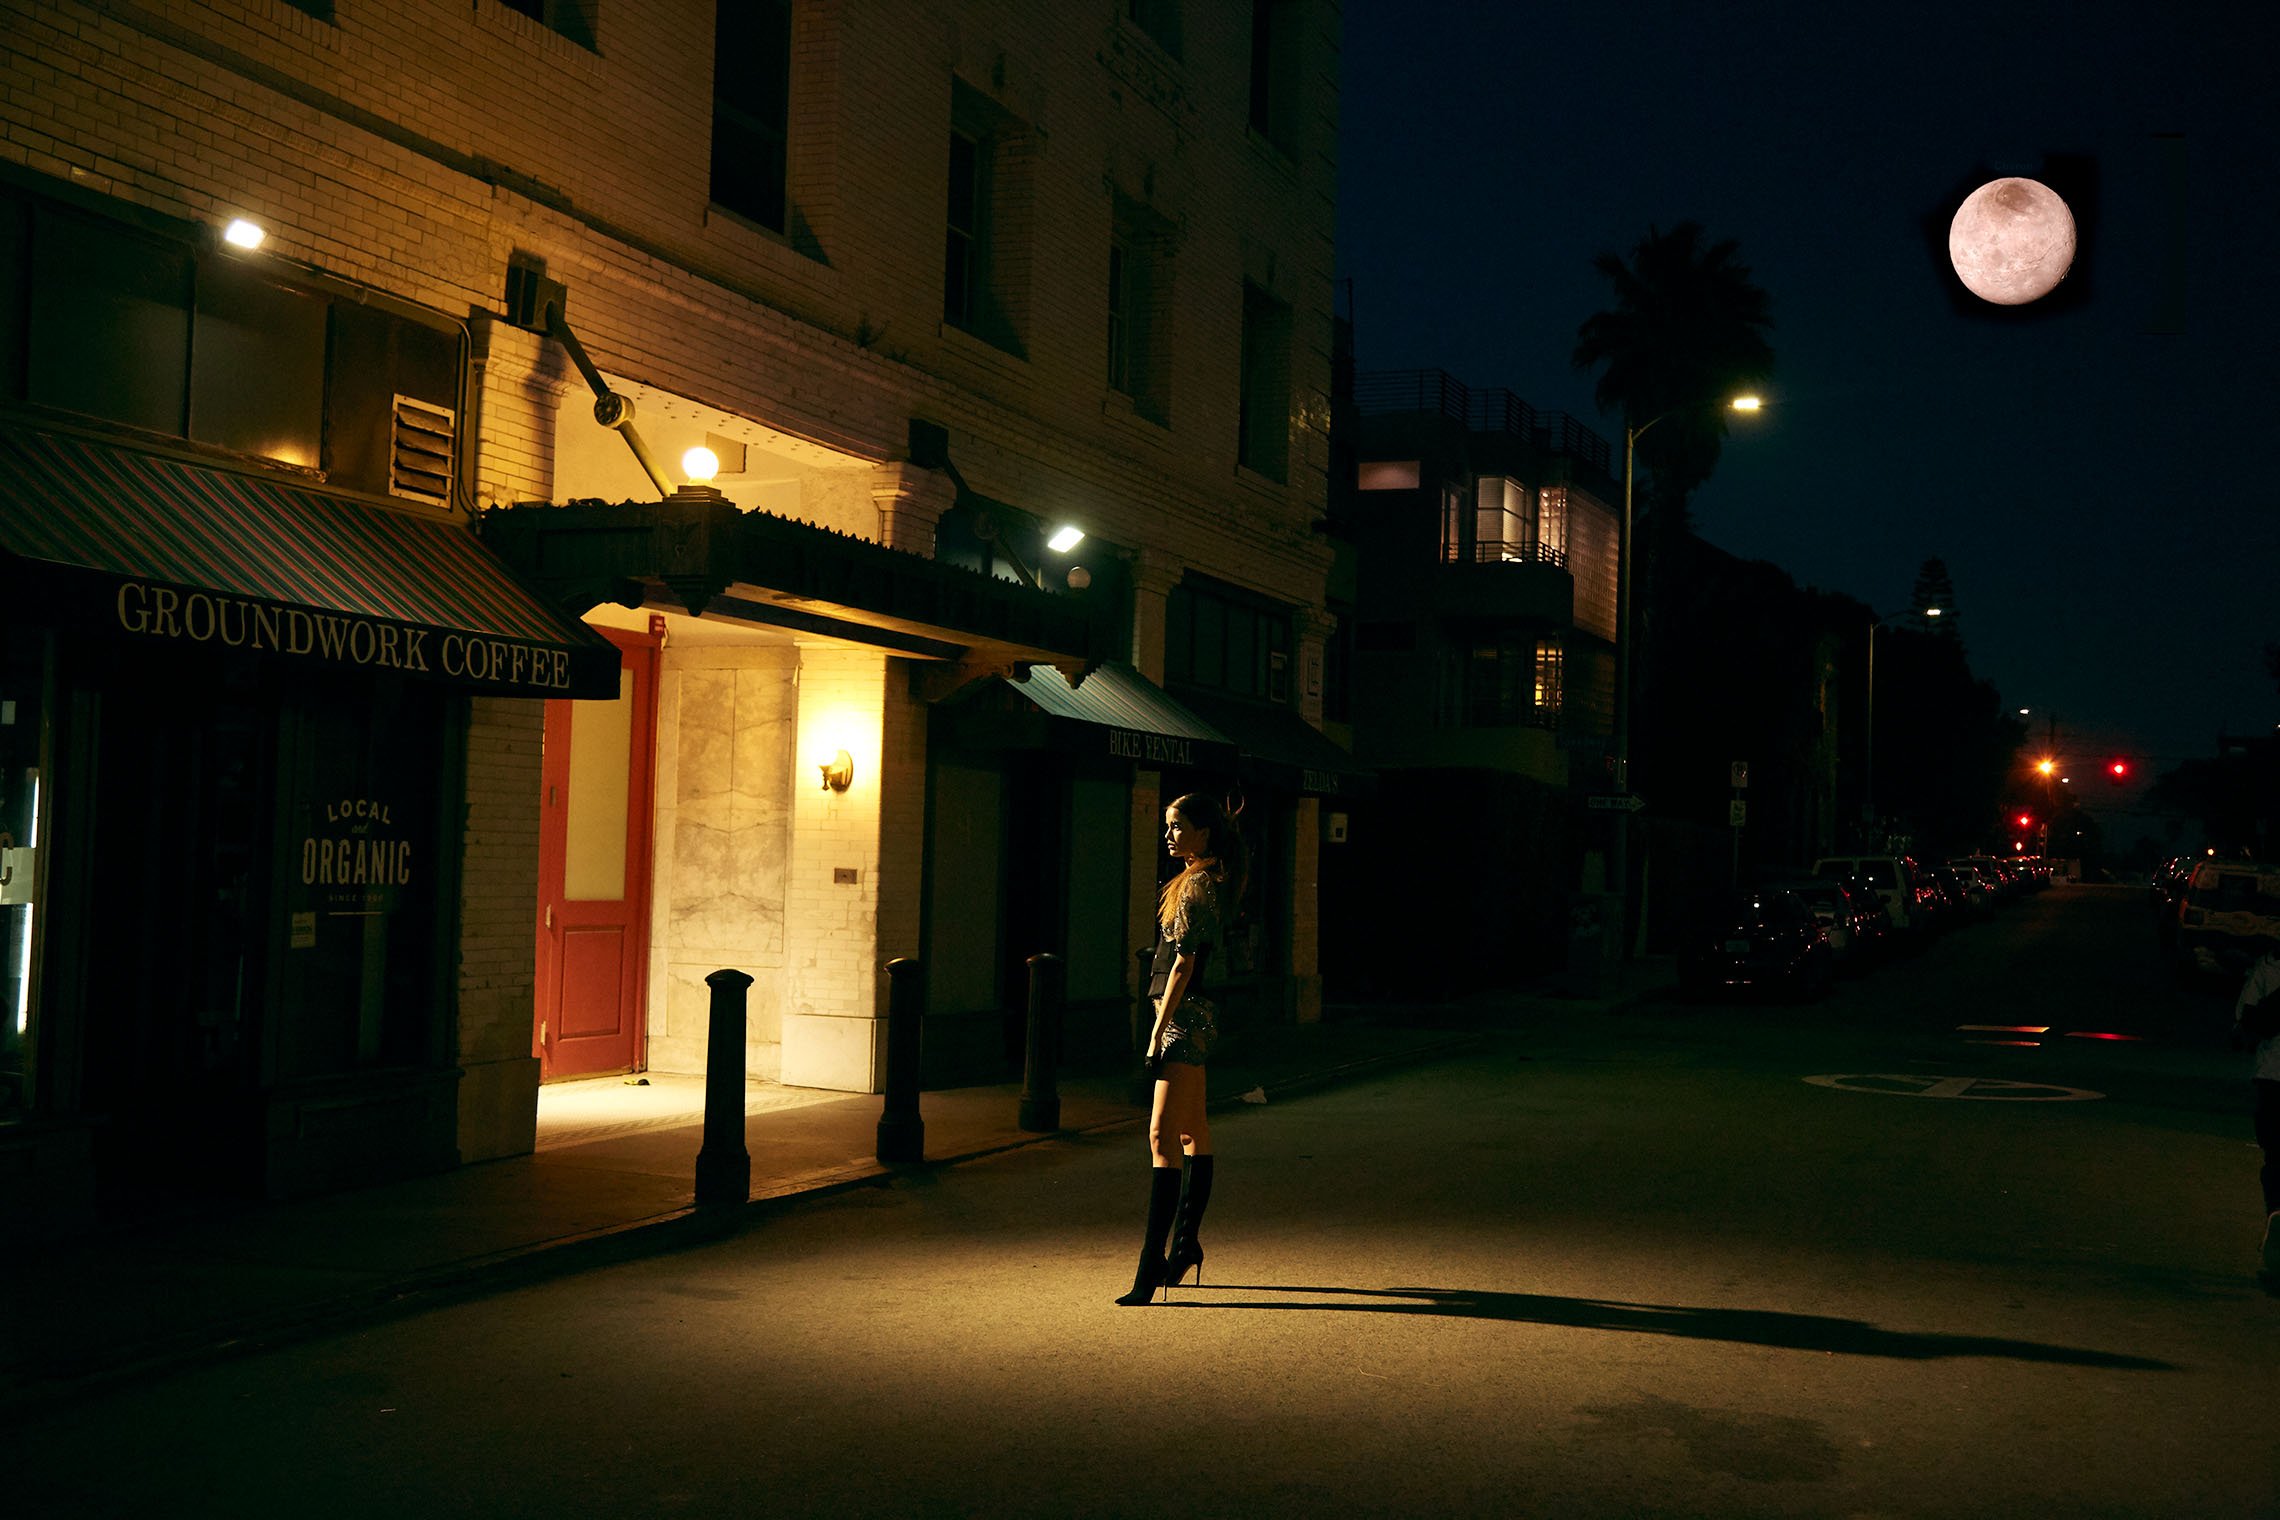 woman in Venice at night in front of a store under the moon, romantic scene